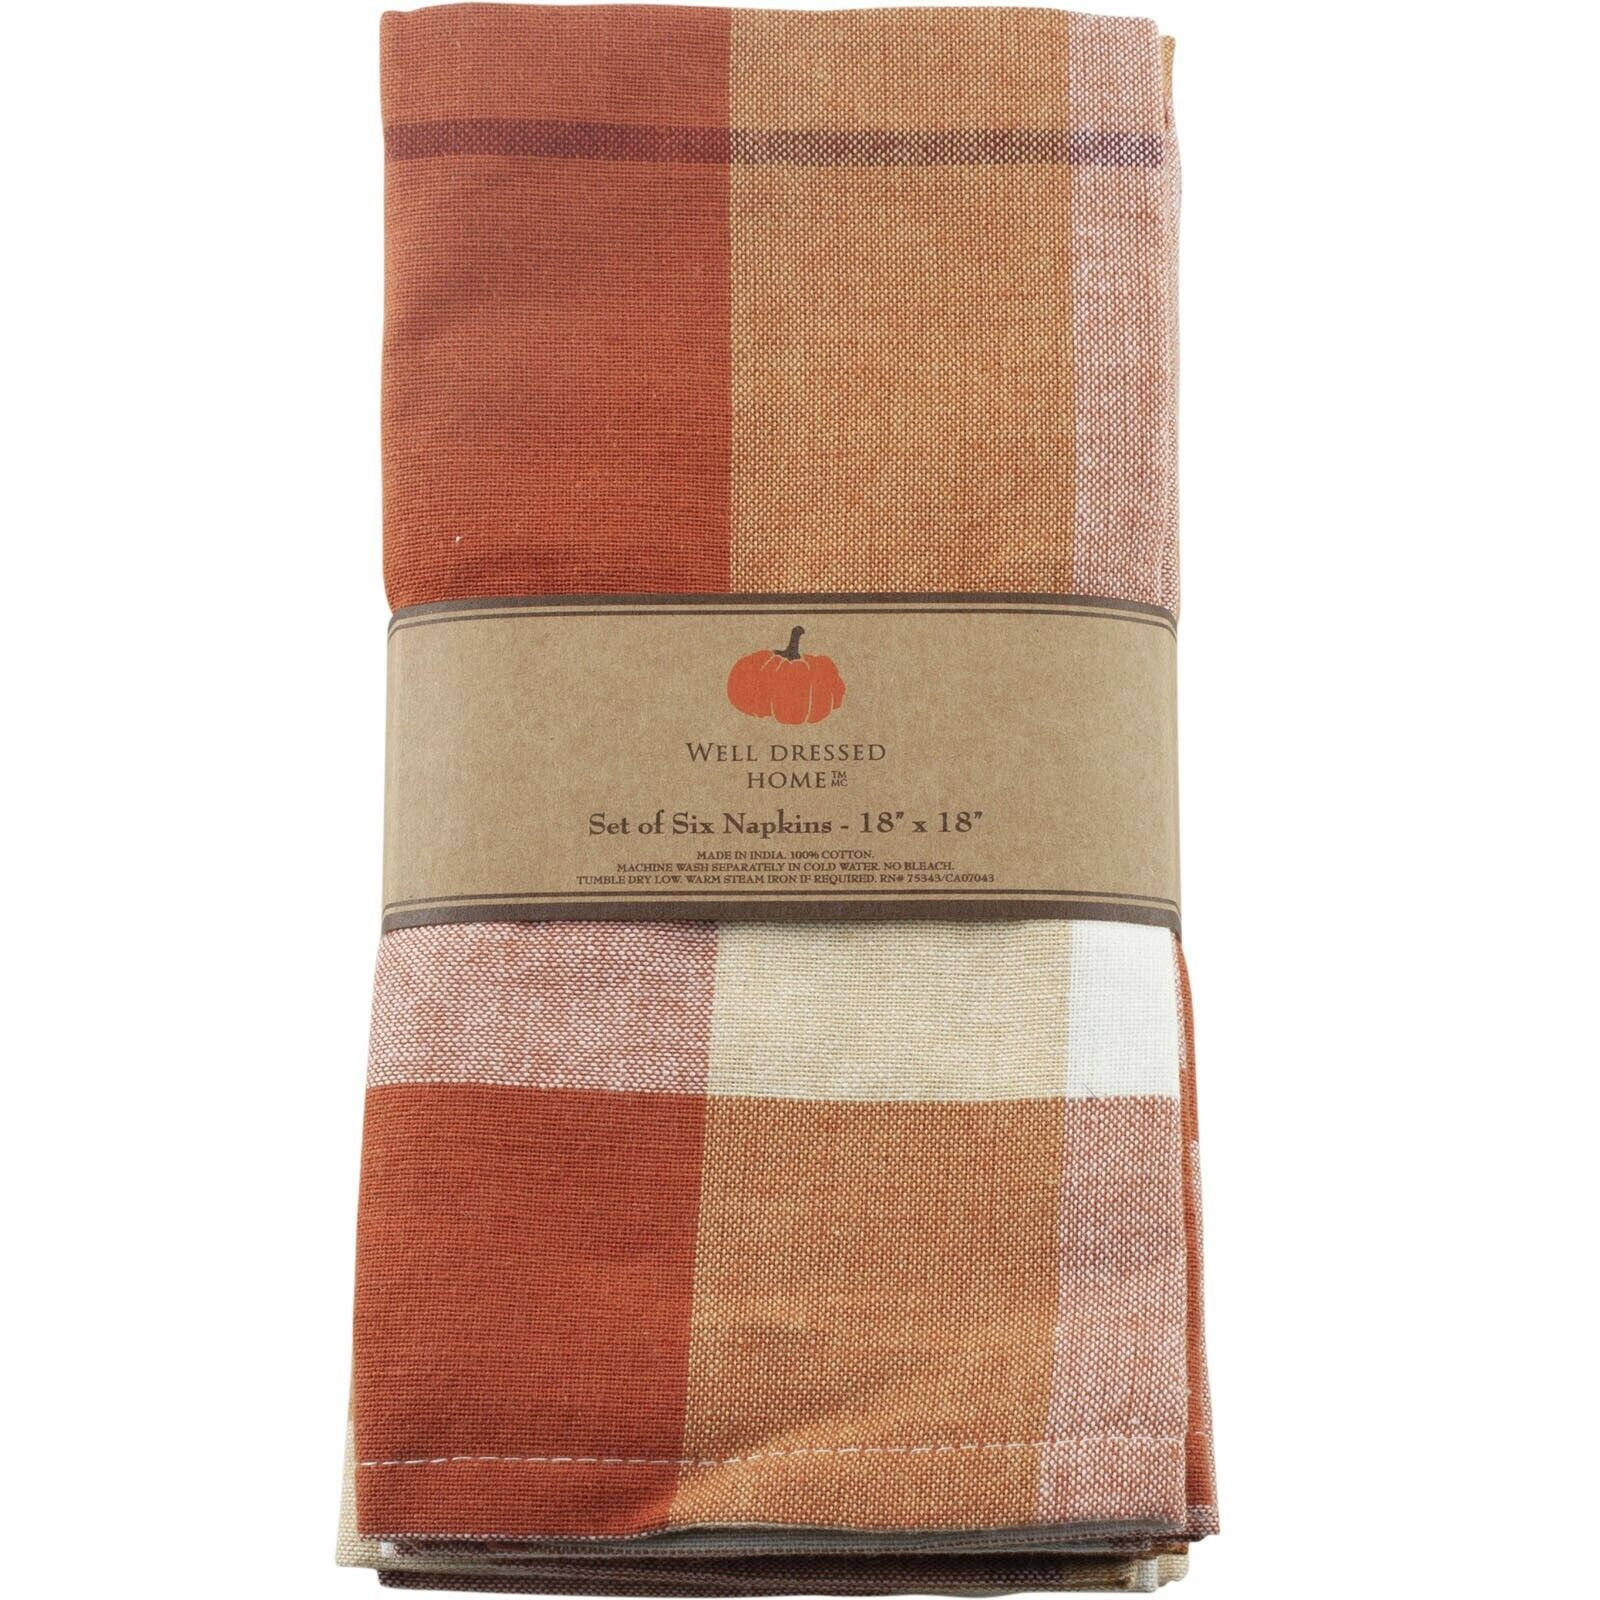 Details about Well Dressed Home Fall Autumn Leaves Cloth Napkins Set of 6 Orange Plaid Brown